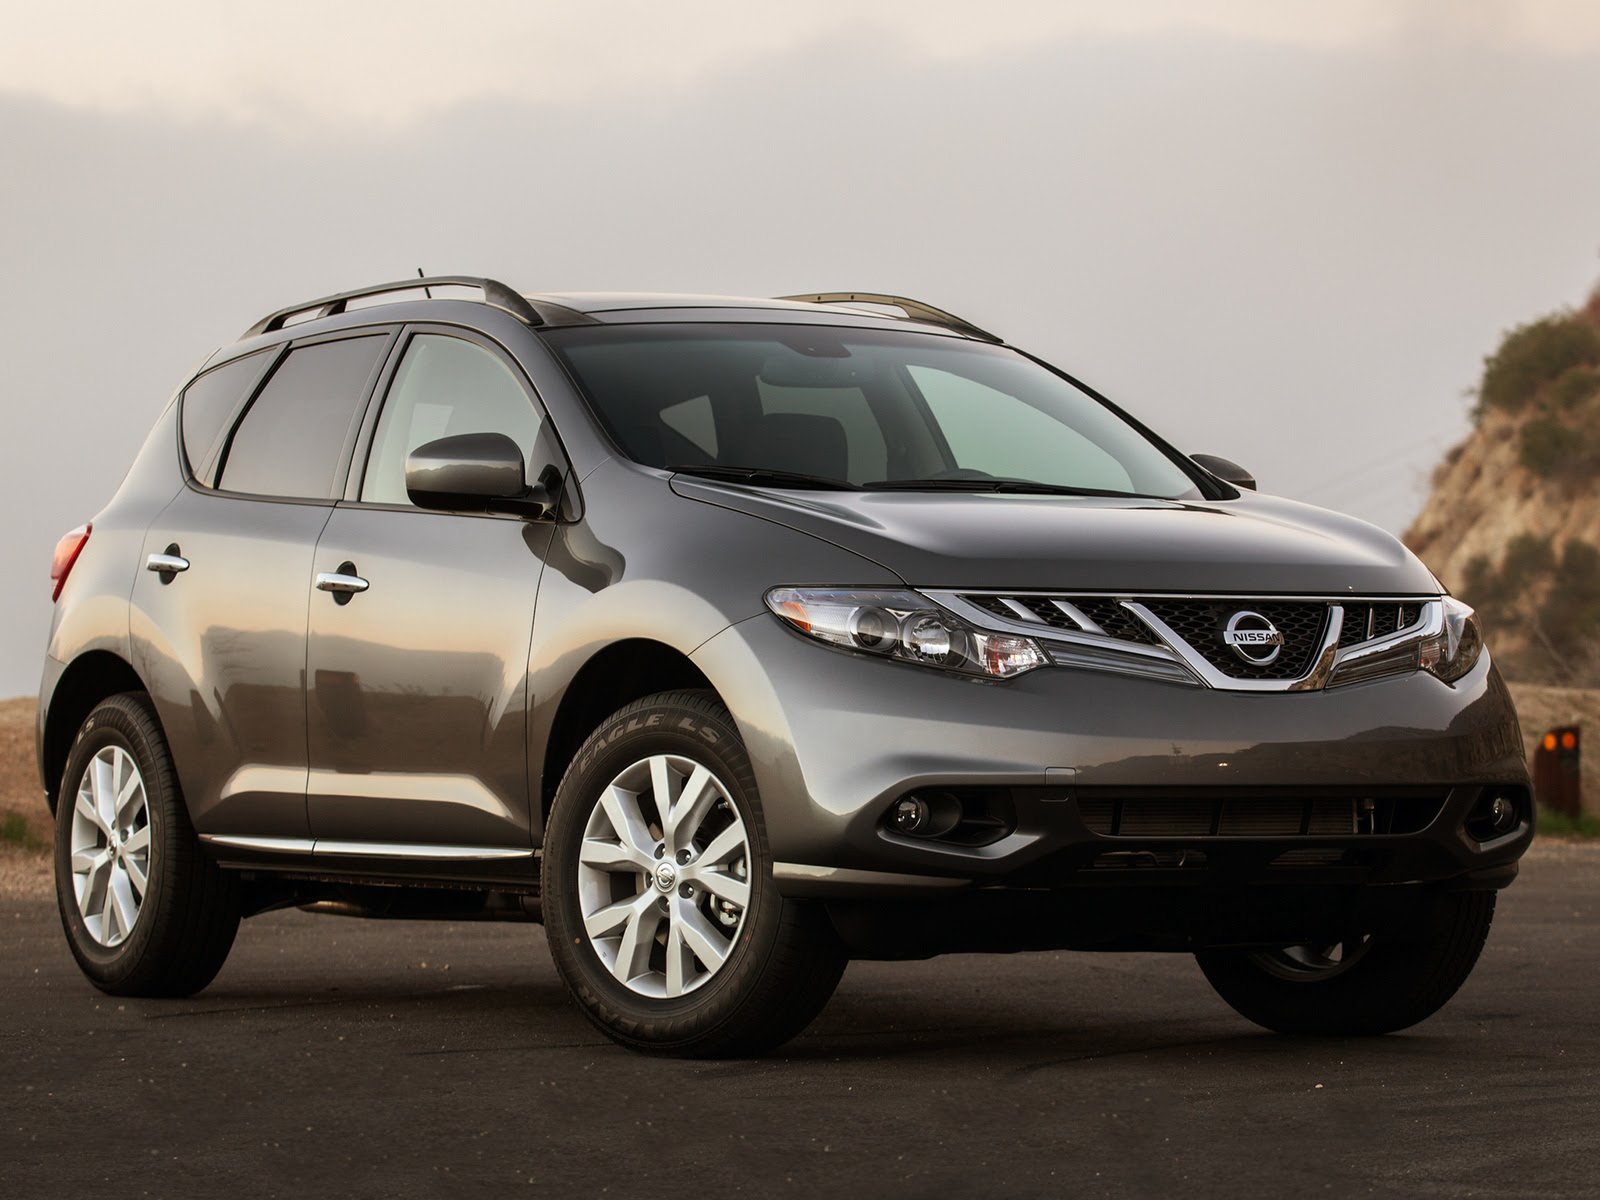 2014 Nissan Rogue Review And Price | 2017 - 2018 Best Car Reviews